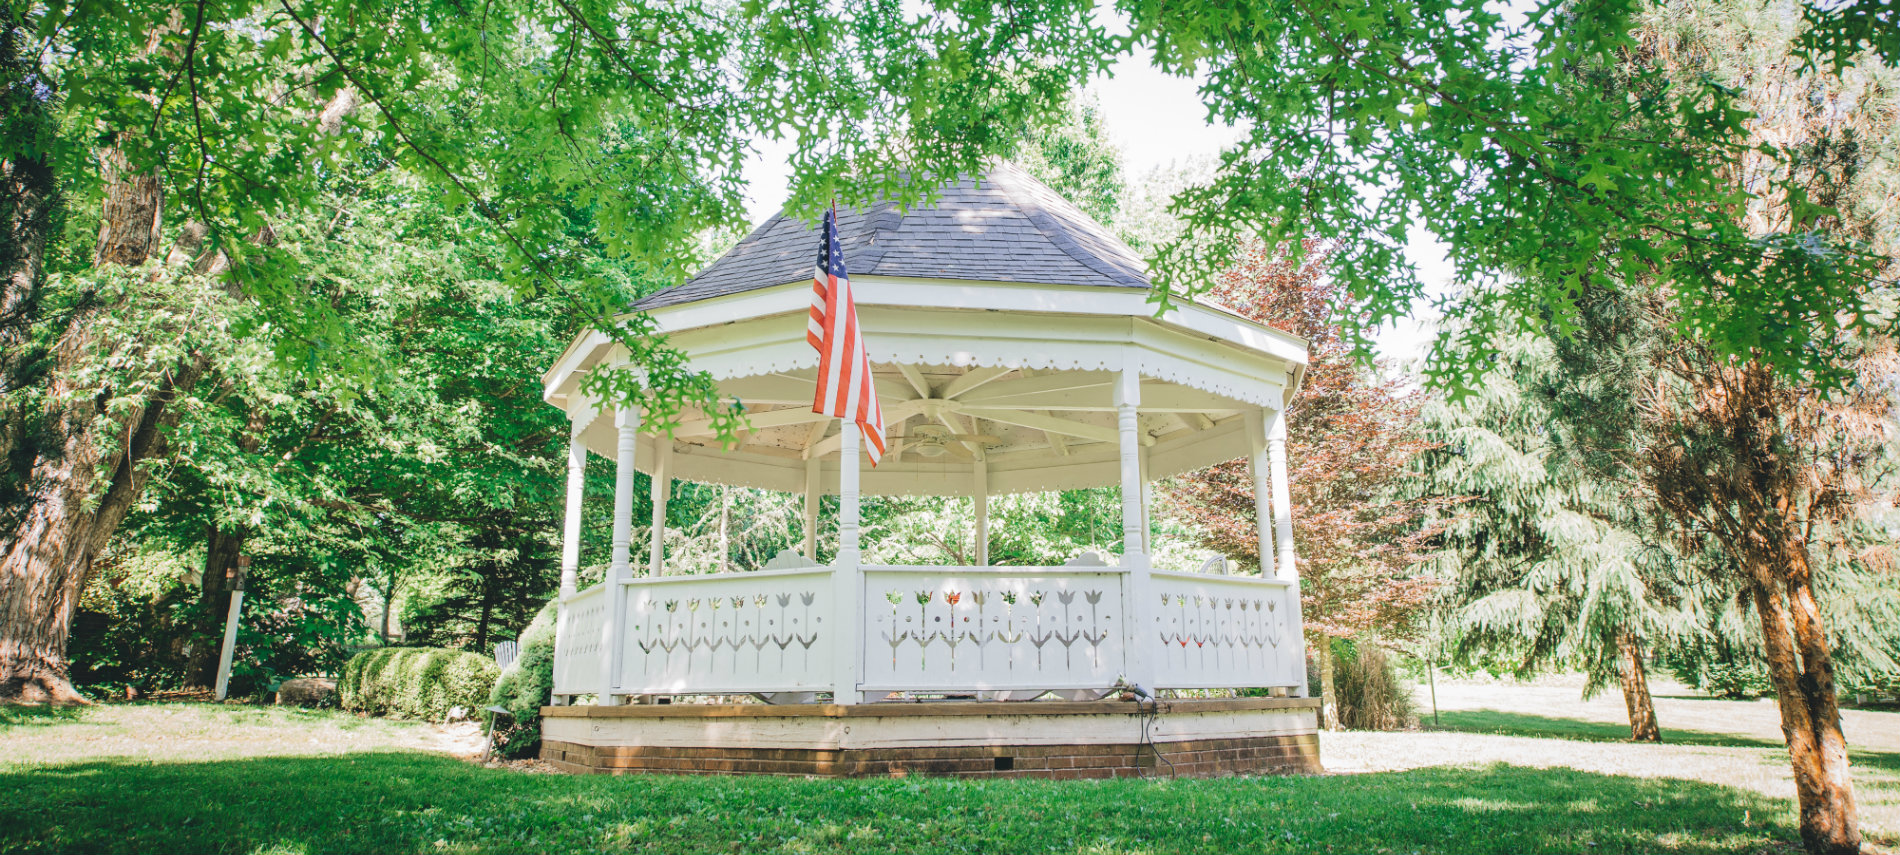 The Old Caledonian's stately gazebo, with green grass and tree boughs, is pictured.